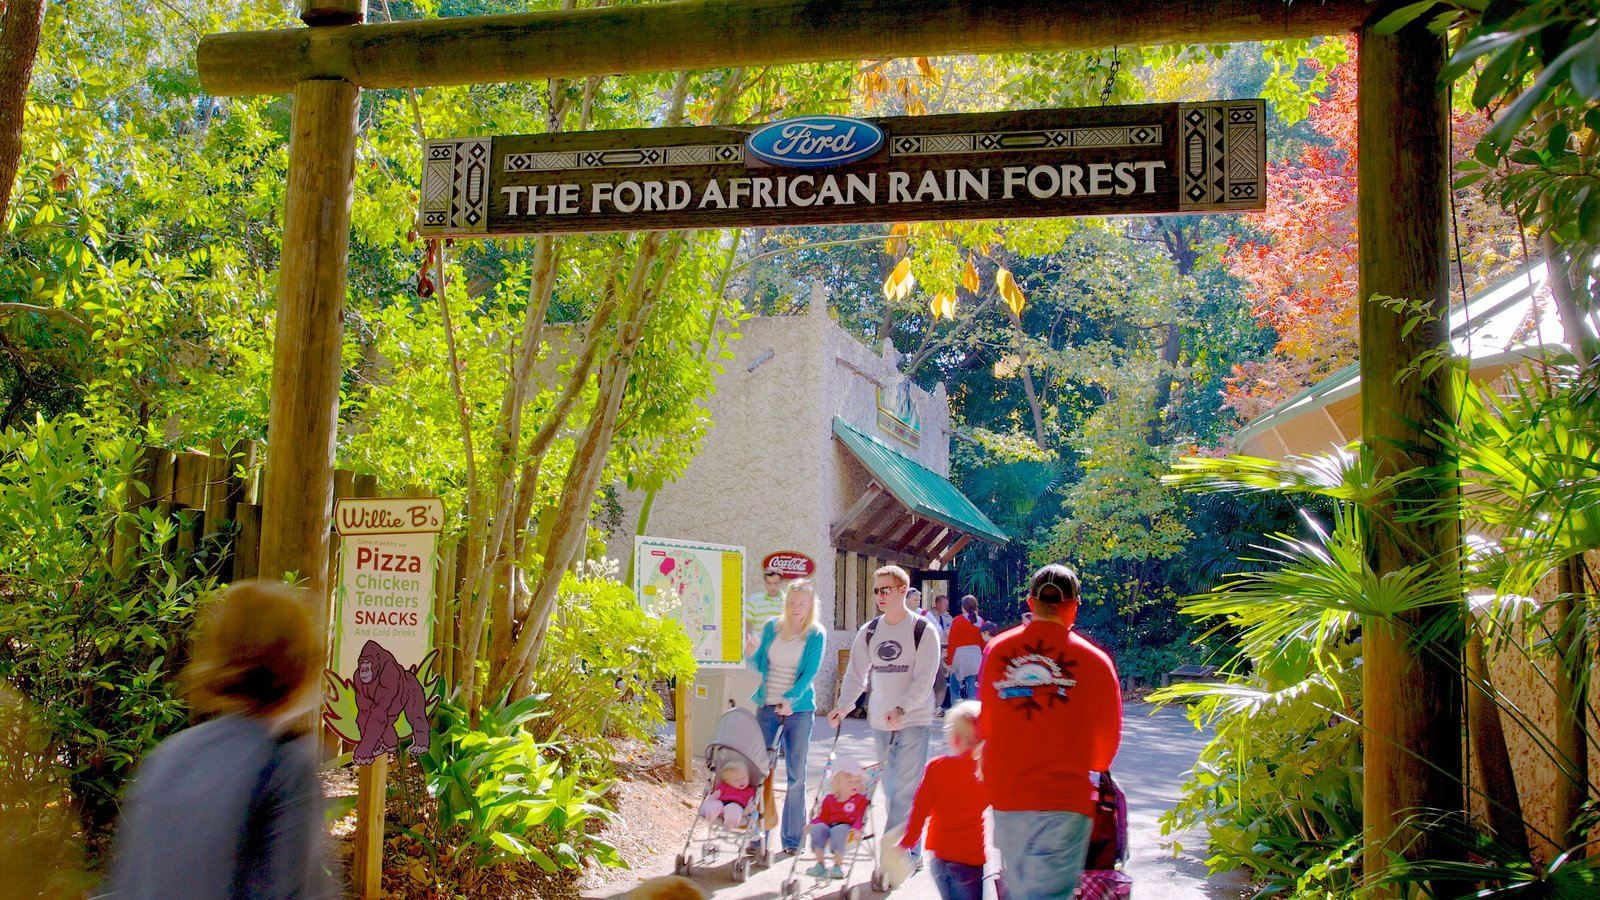 Zoo Atlanta which includes zoo animals and signage